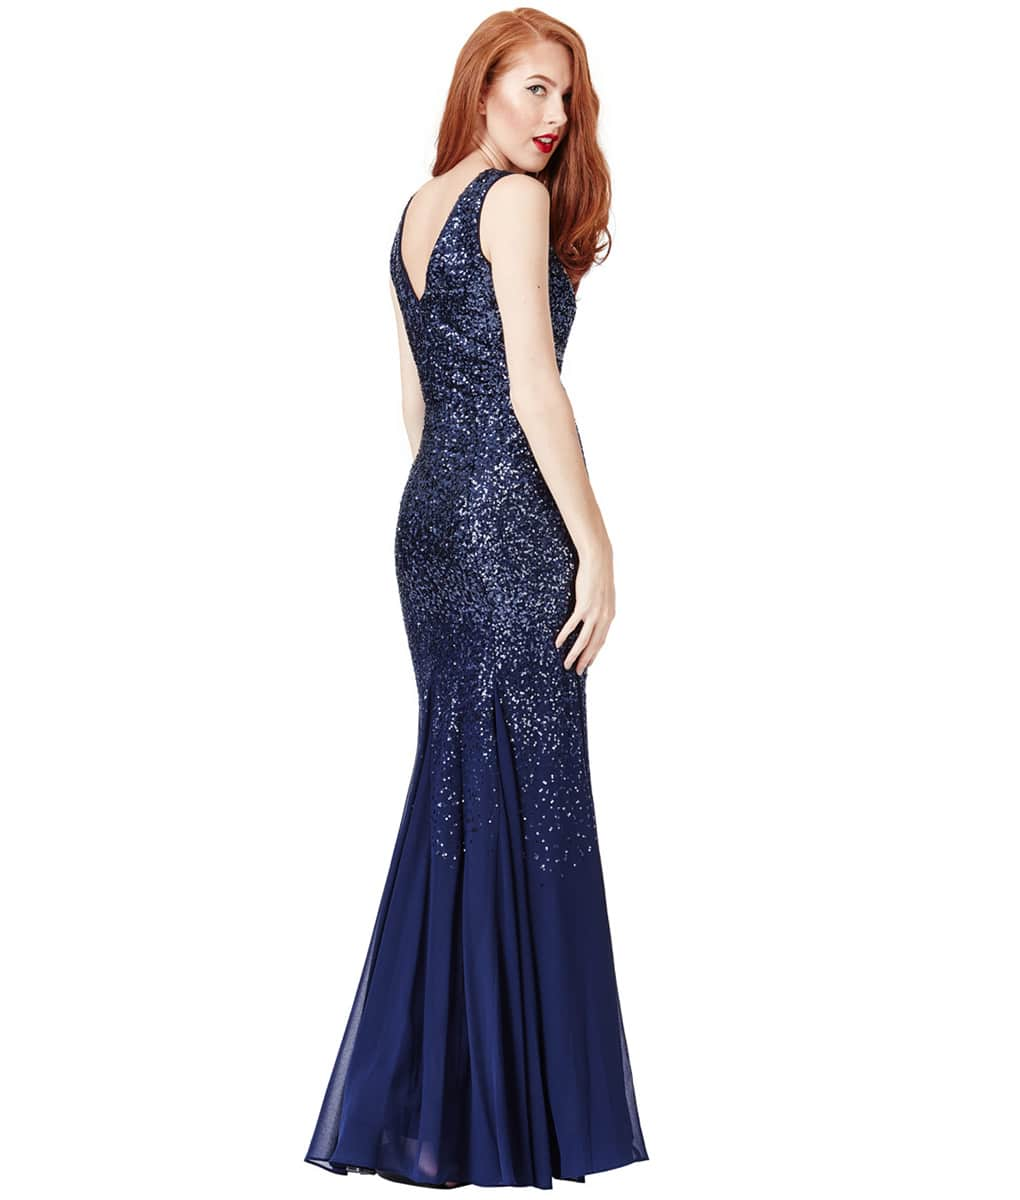 ALILA-Navy-Sequin-v-neck-chiffon-end-bridesmaid-dress